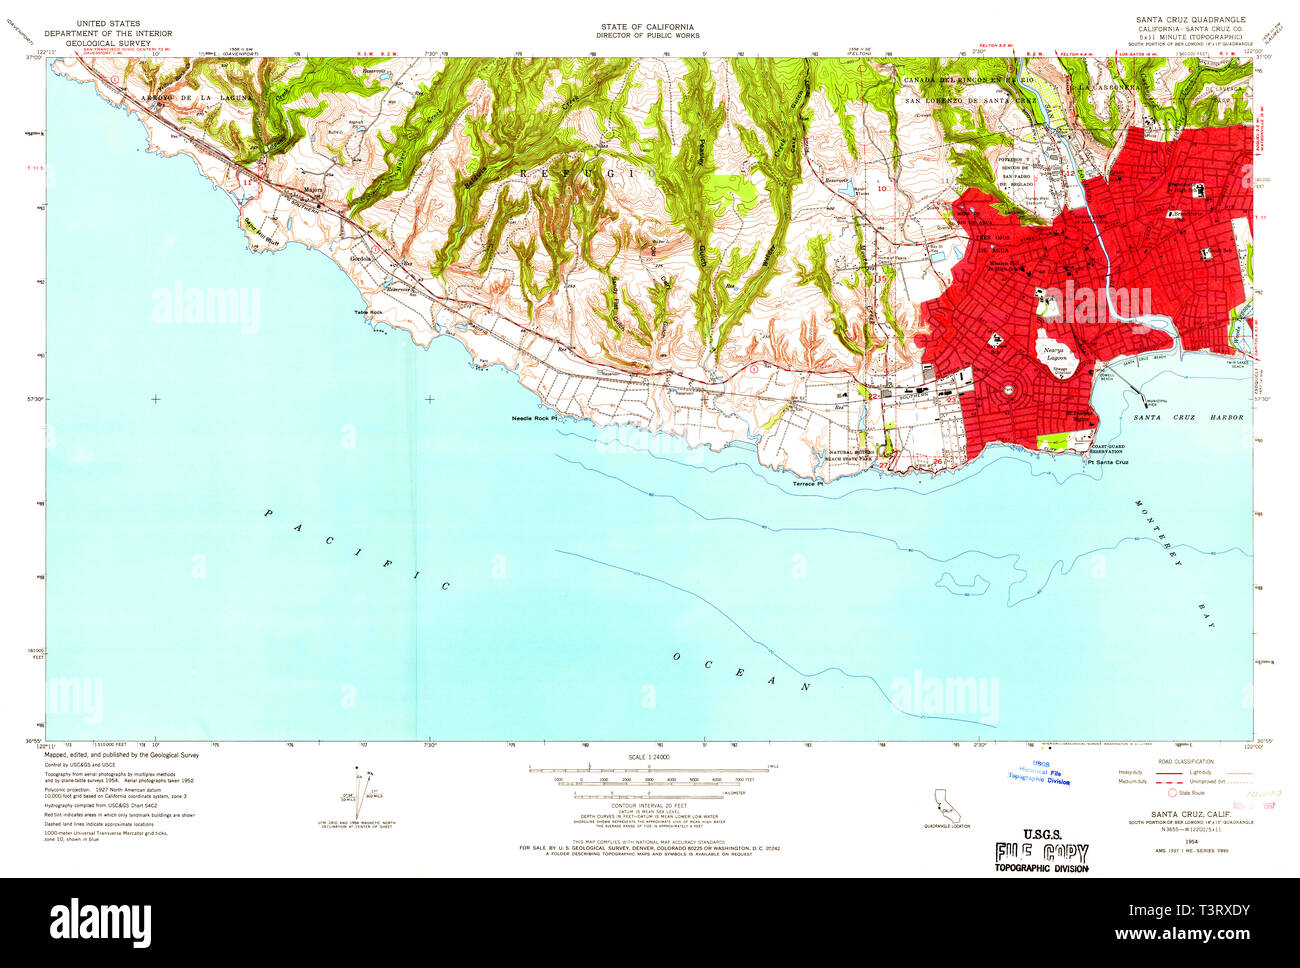 Santa Cruz California Map.Usgs Topo Map California Ca Santa Cruz 300244 1954 24000 Restoration